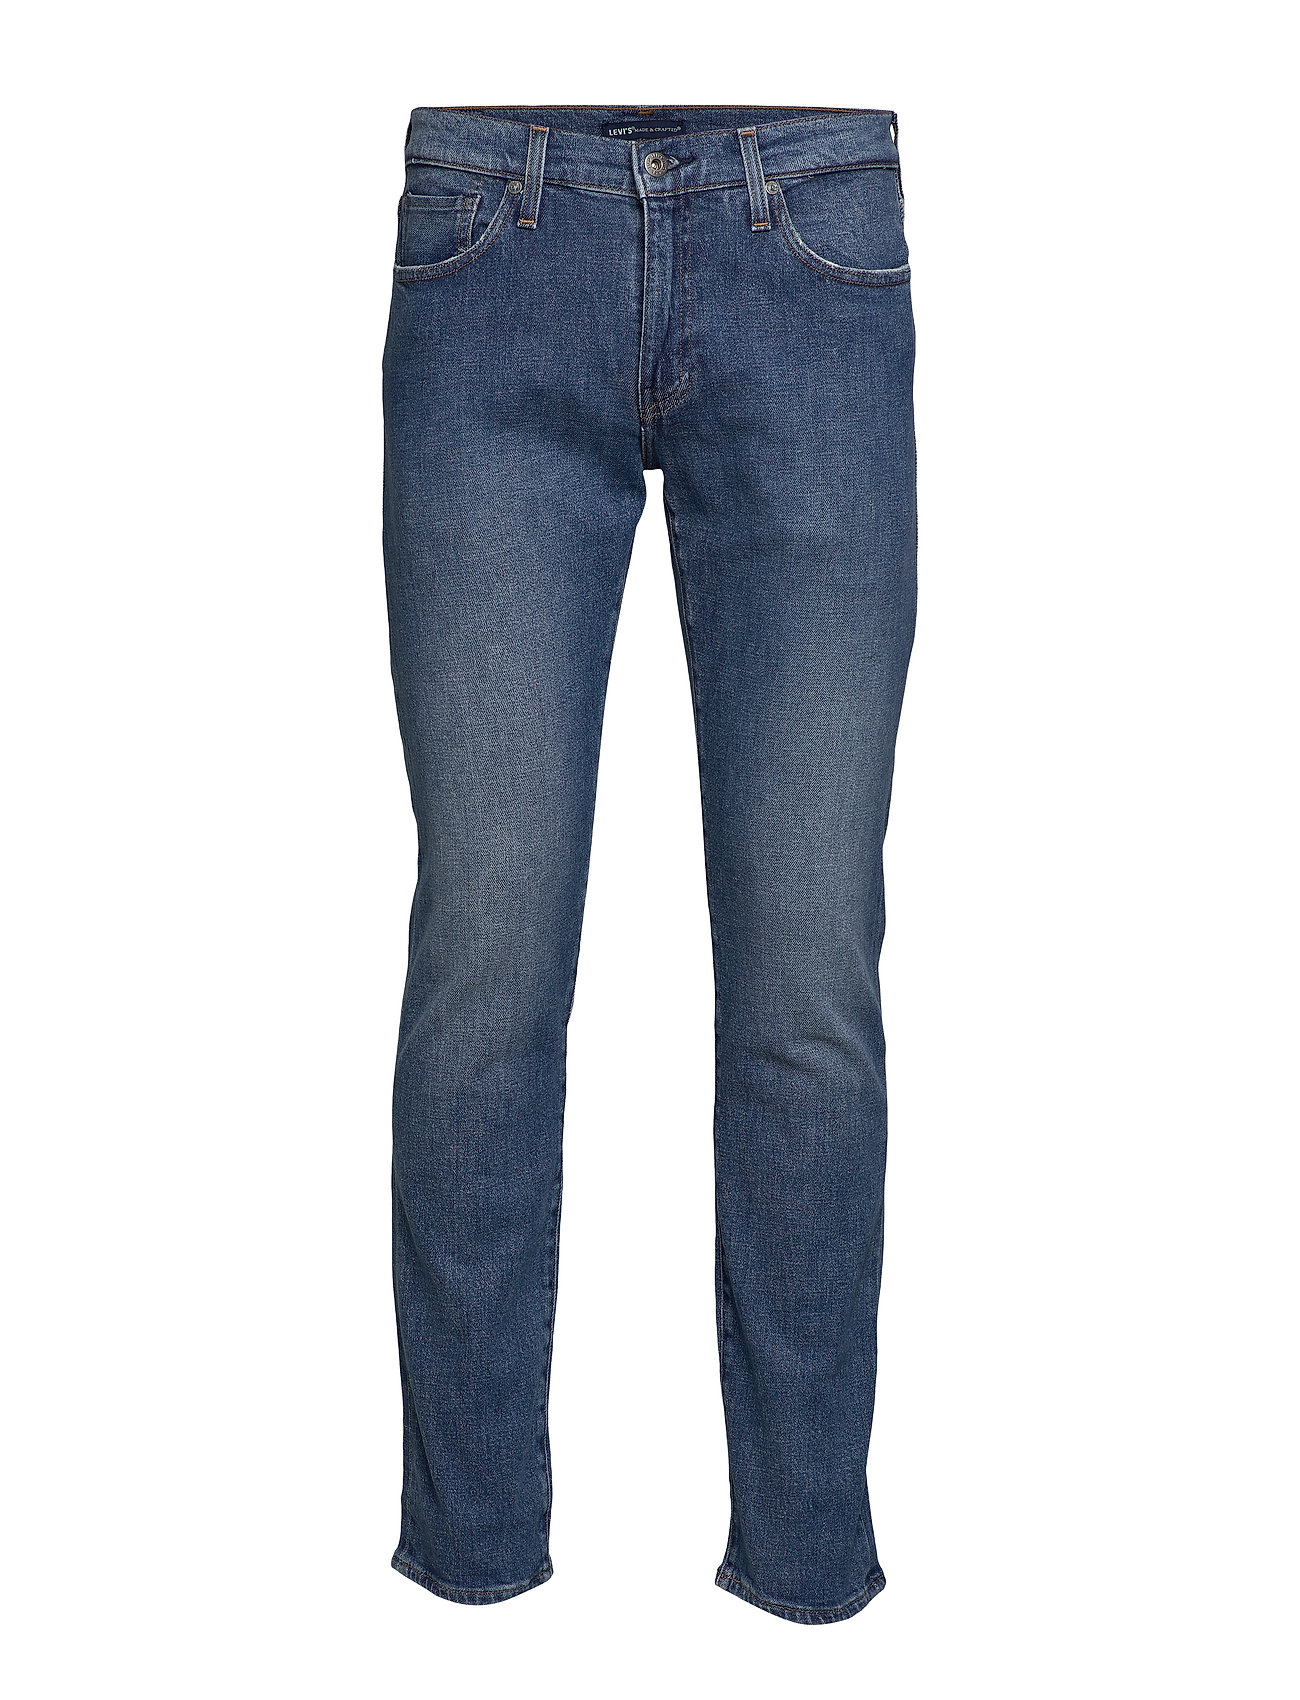 Levi's Made & Crafted LMC 511 LMC DIEGO - MED INDIGO - WORN IN